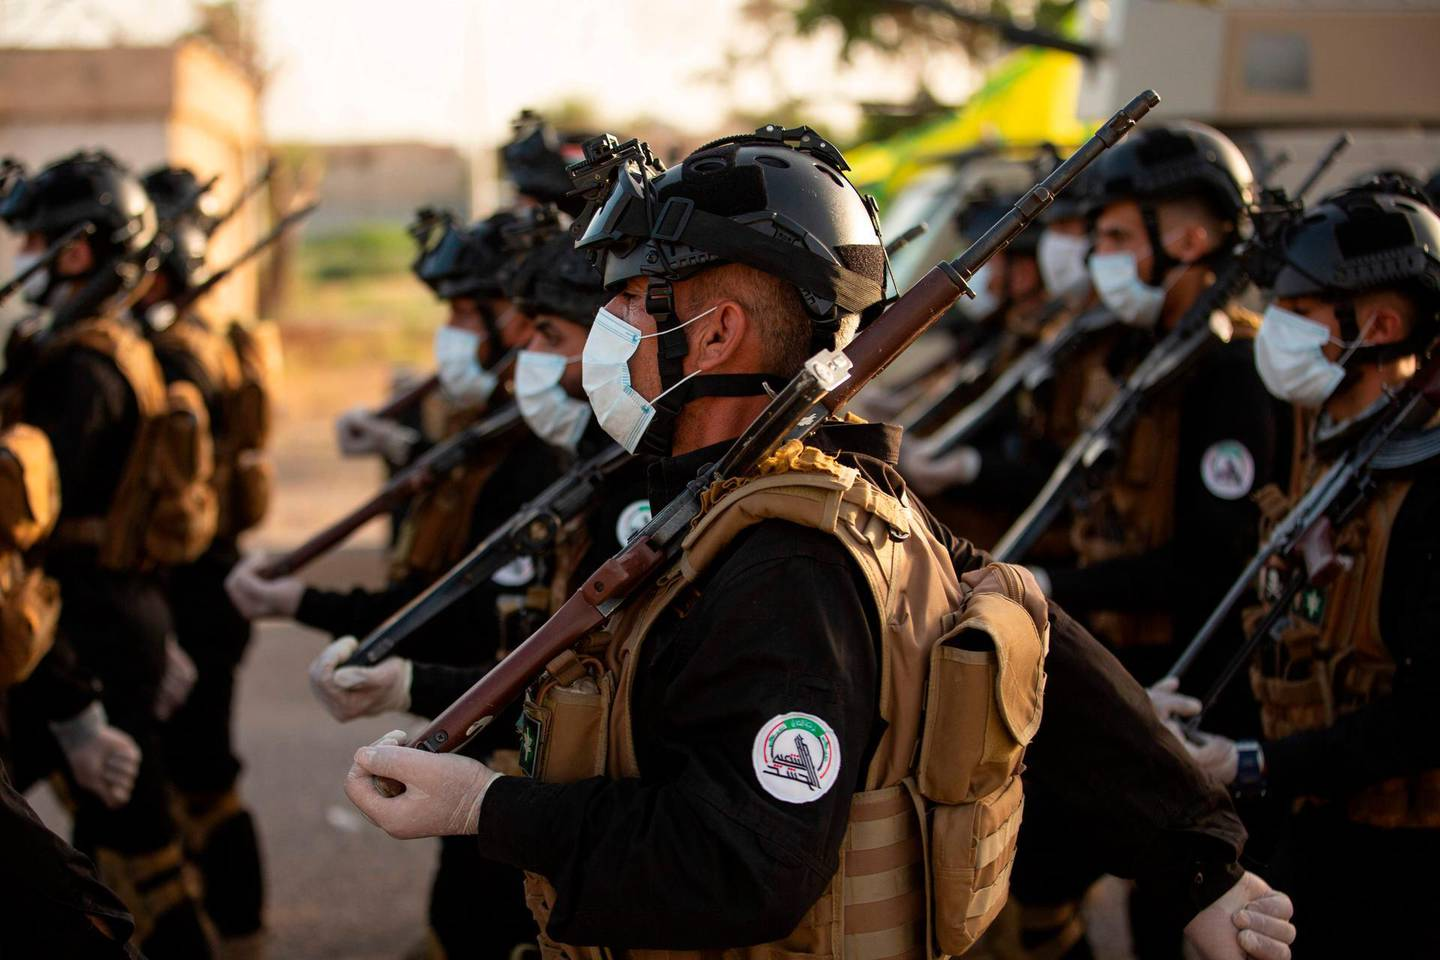 (FILES) In this file photo taken on June 14, 2020 Mask-clad members of the Hashed al-Shaabi (Popular Mobilisation) paramilitary force take part in a military parade in the southern Iraqi city of Basra, marking the sixth anniversary of its founding after Iraq's top Shiite cleric Grand Ayatollah Ali Sistani called to defend the country from the Islamic State group (IS). Around the corner from Iraq's holiest shrines, a years-long struggle over resources and reputations is coming to a head -- threatening a dangerous schism within a powerful state-sponsored security force. The growing fissure pits the vast Iran-aligned wing of the Hashed al-Shaabi network against four factions linked to the shrines of Iraq's twin holy cities, Karbala and Najaf. / AFP / Hussein FALEH